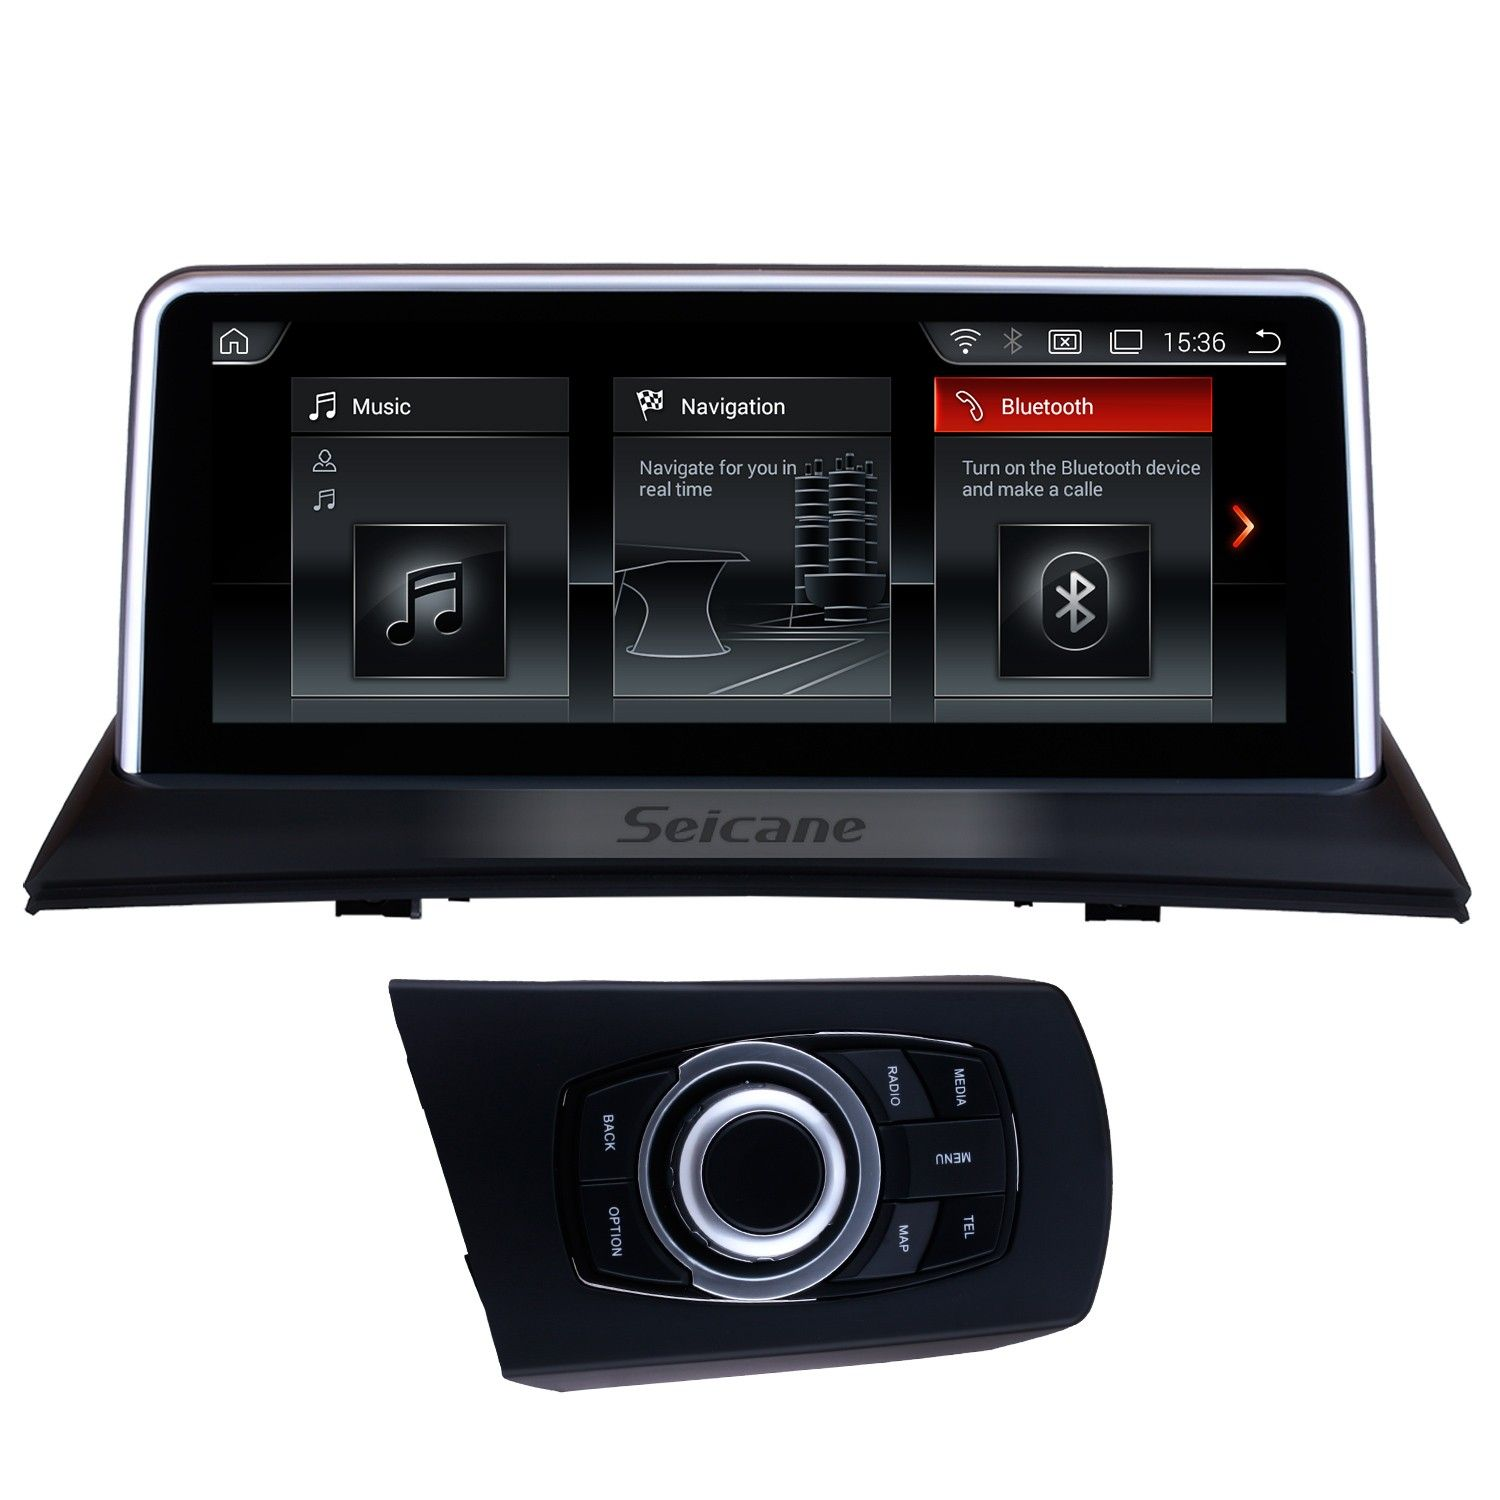 Seicane 10 25 Inch Android 8 1 Hd Touch Screen 2004 2009 Bmw X3